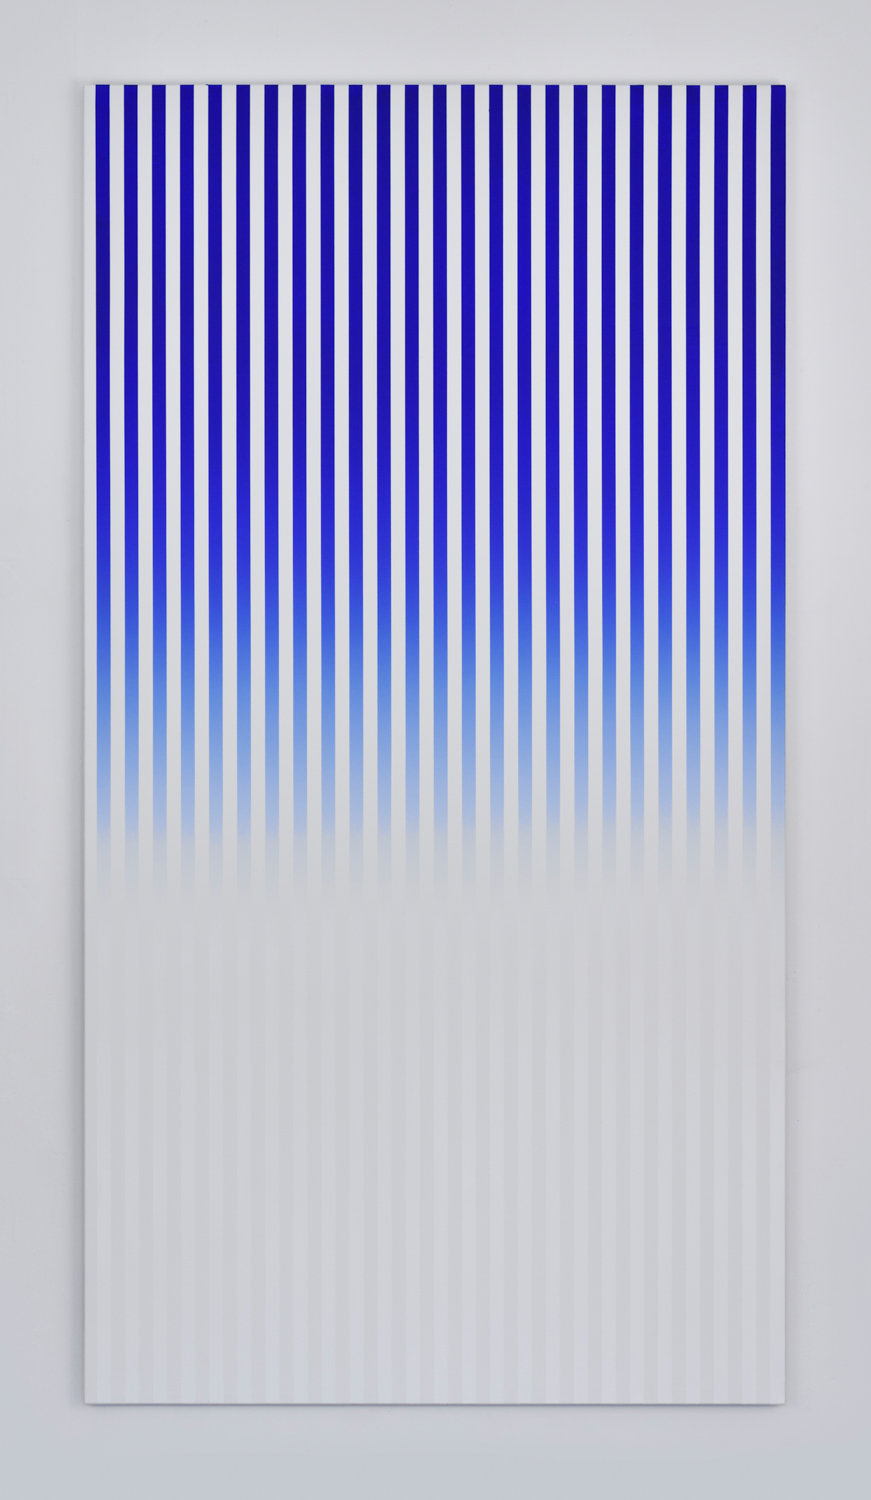 Slow Motion, 2016 acrylic on canvas 190 x 110 cm - 74 3/4 x 43 1/4 inches